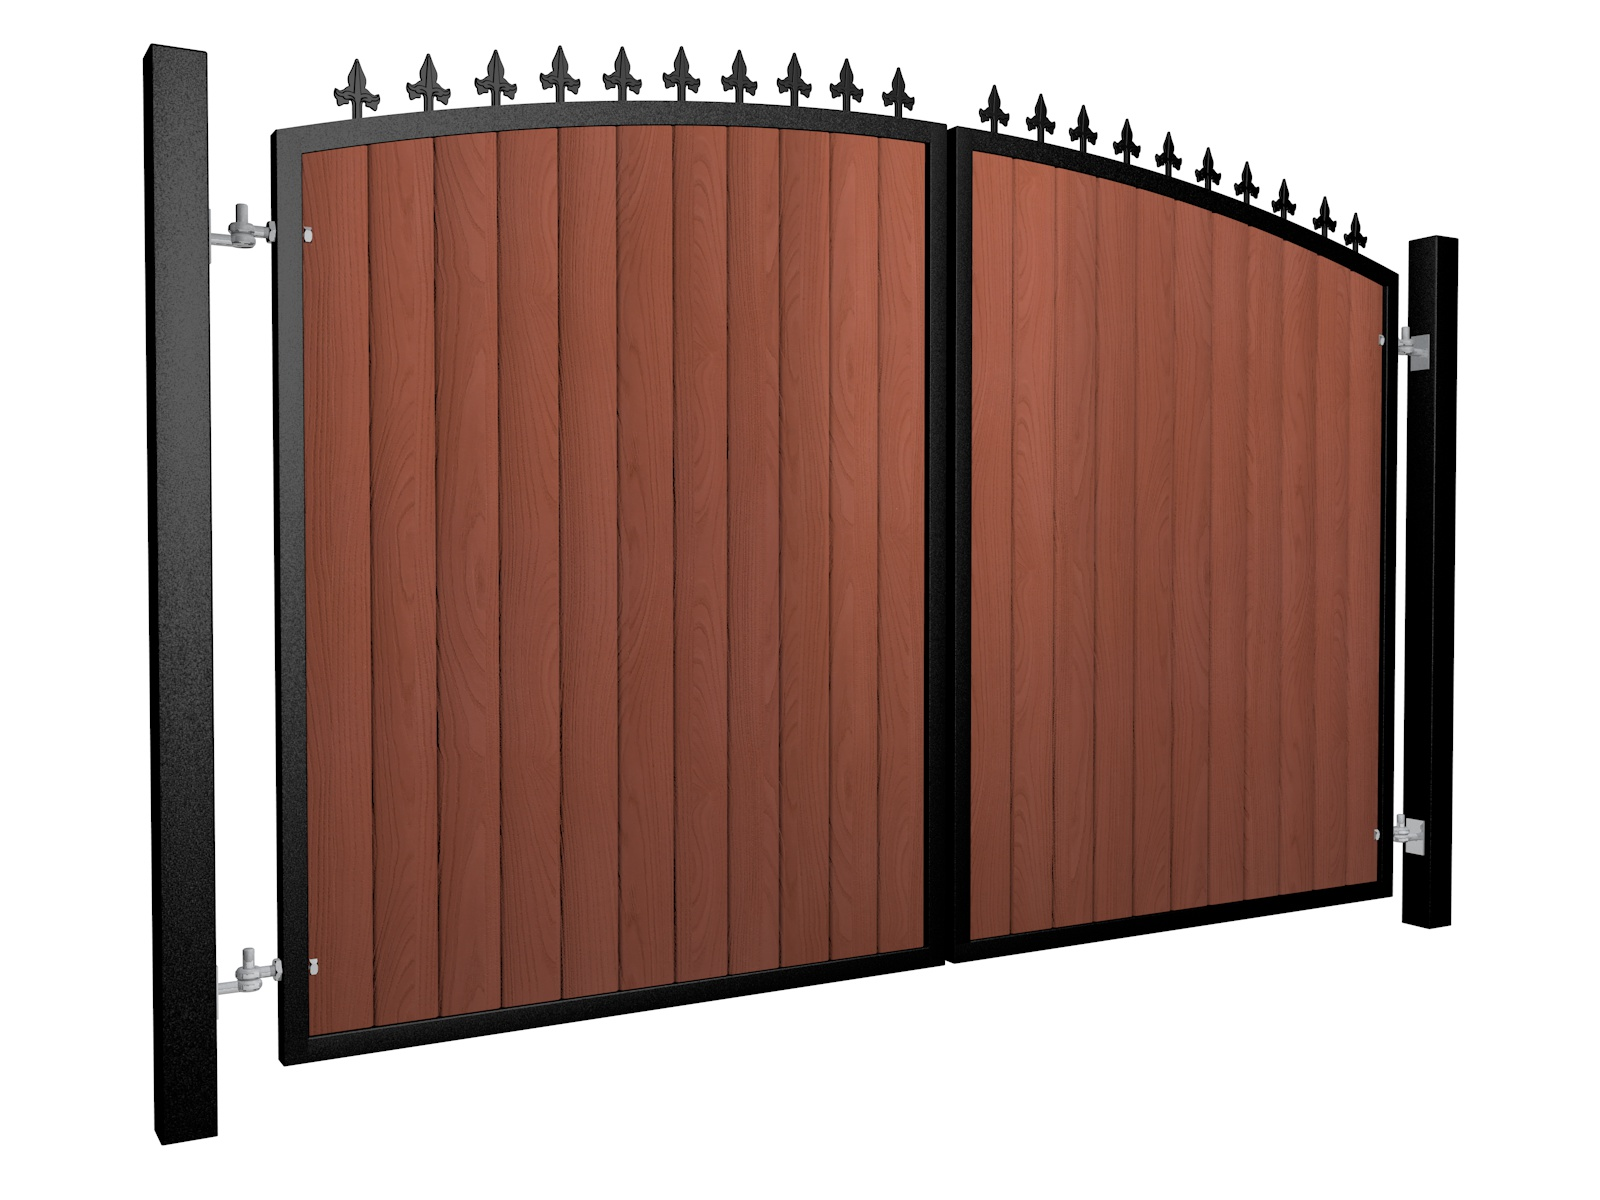 metal framed wood fill arch top automated gate with finials